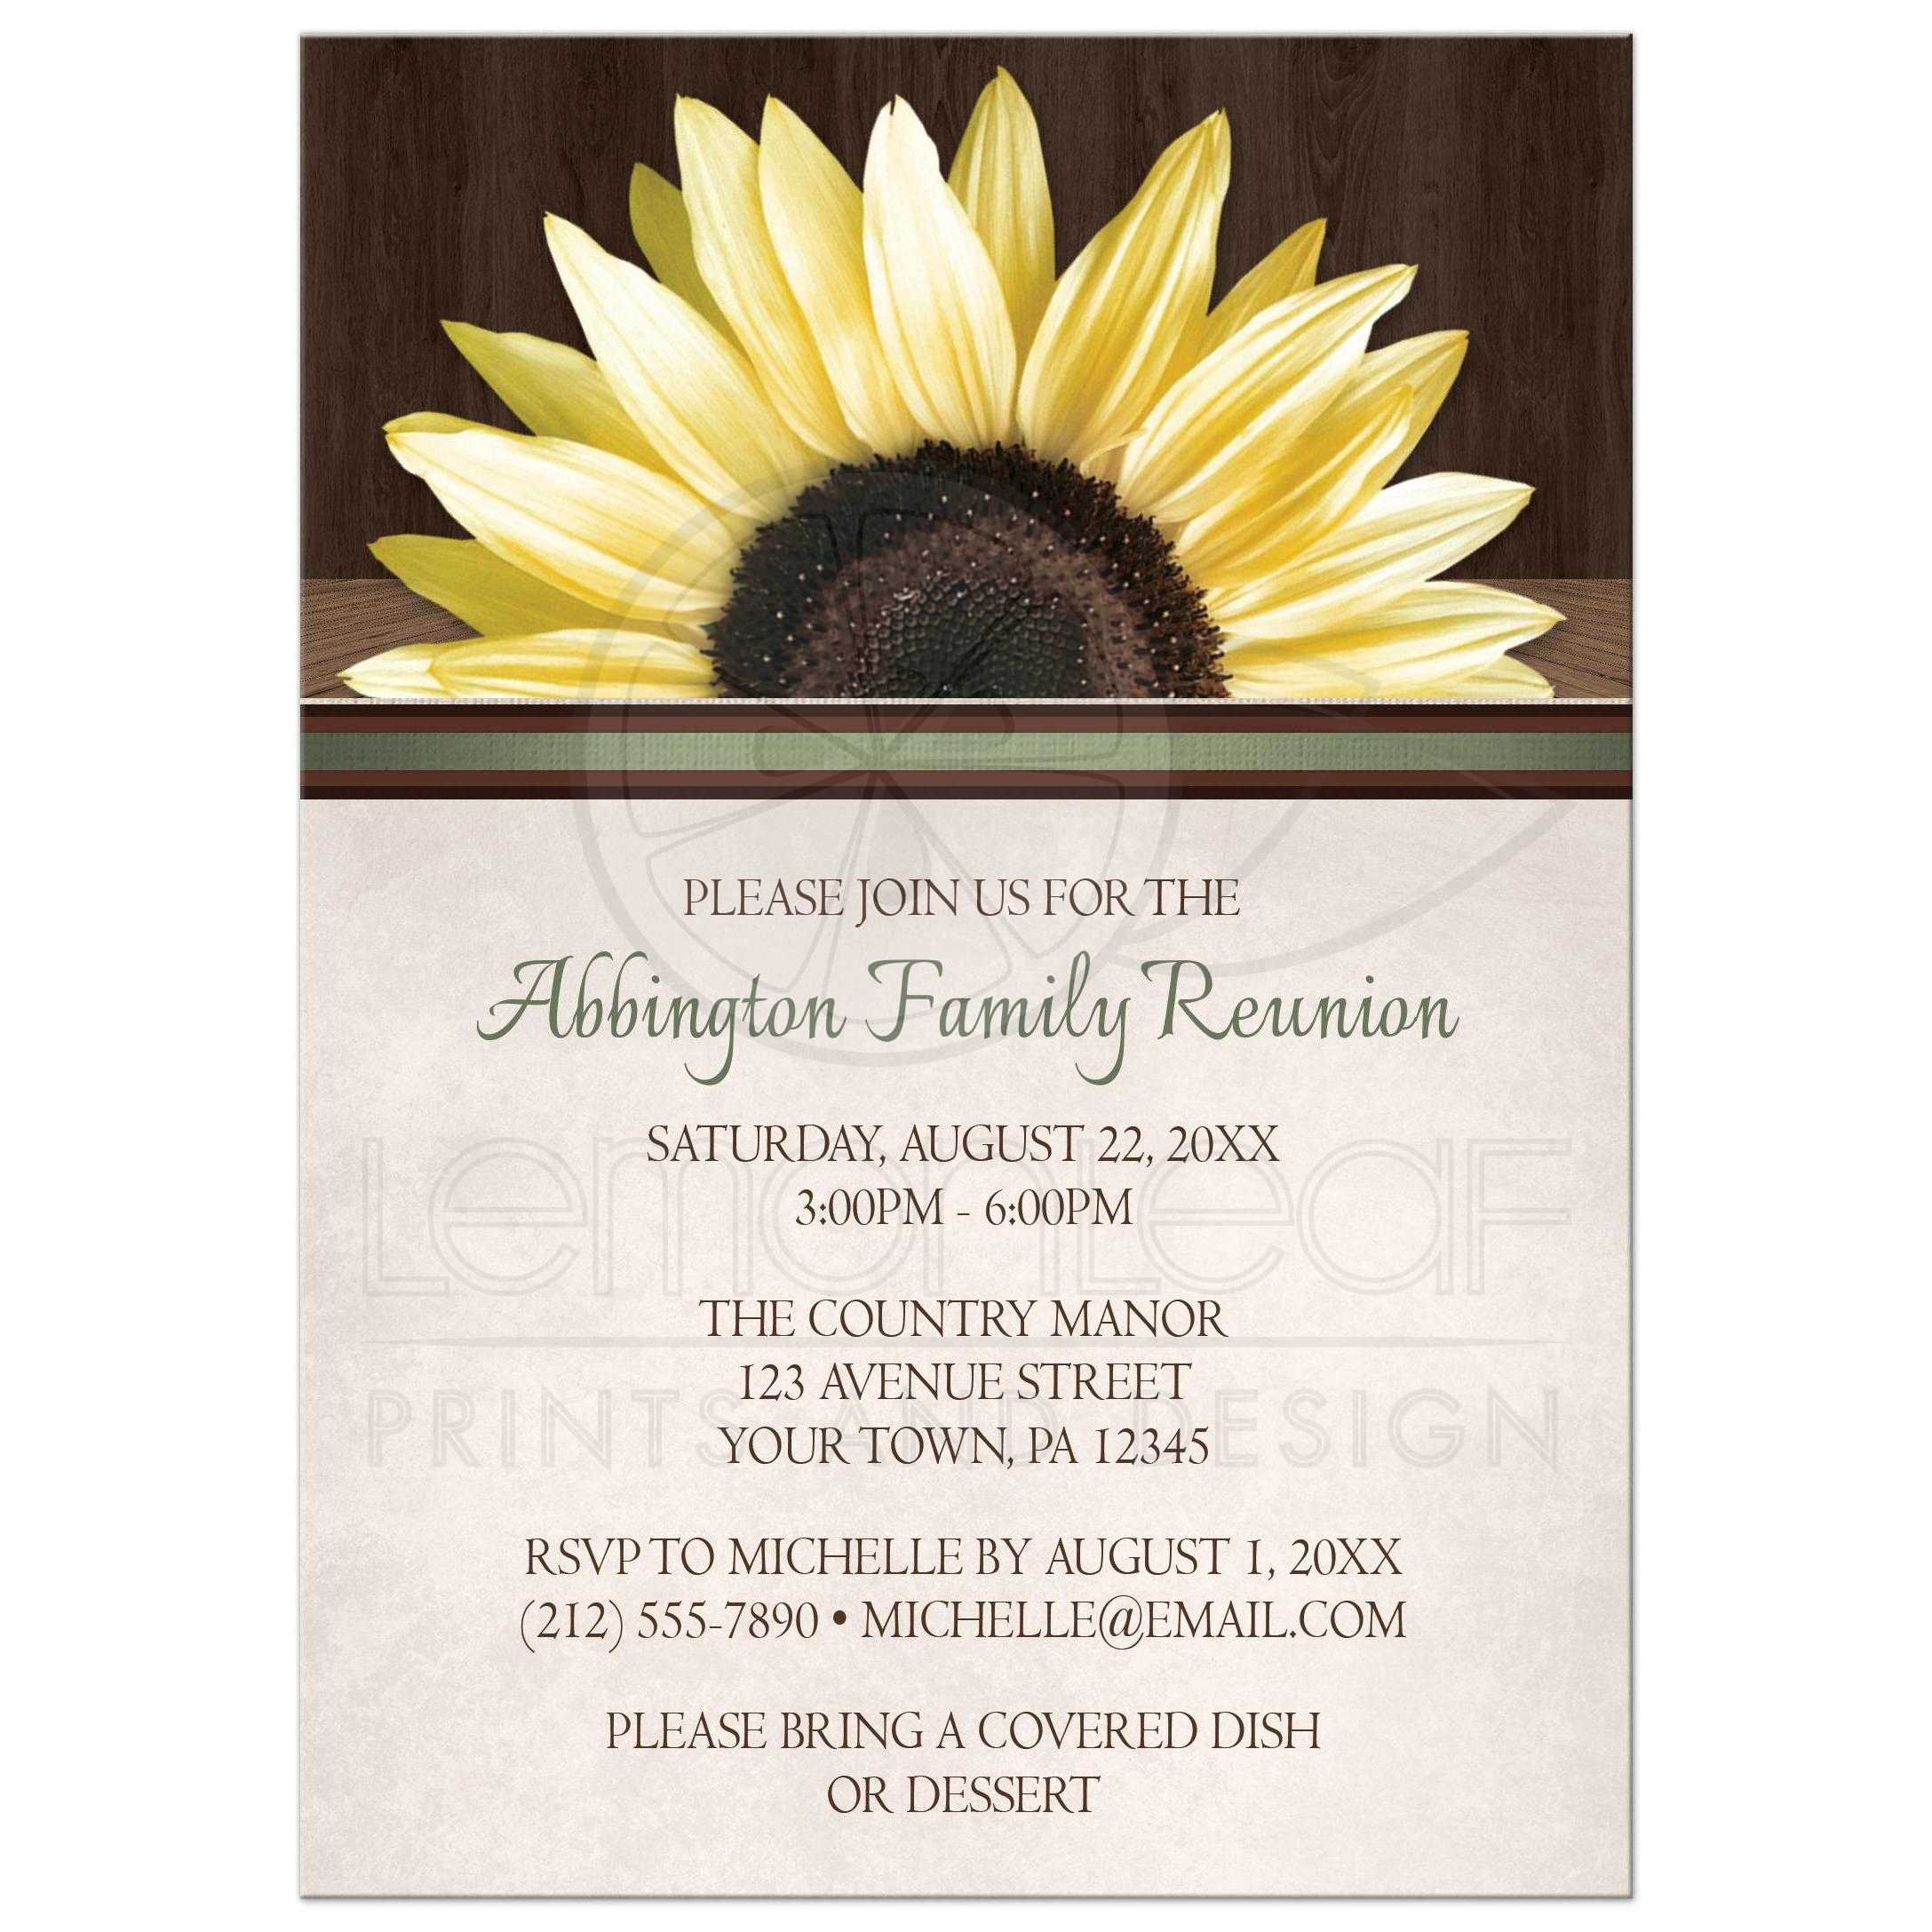 family reunion invitations country sunflower over wood